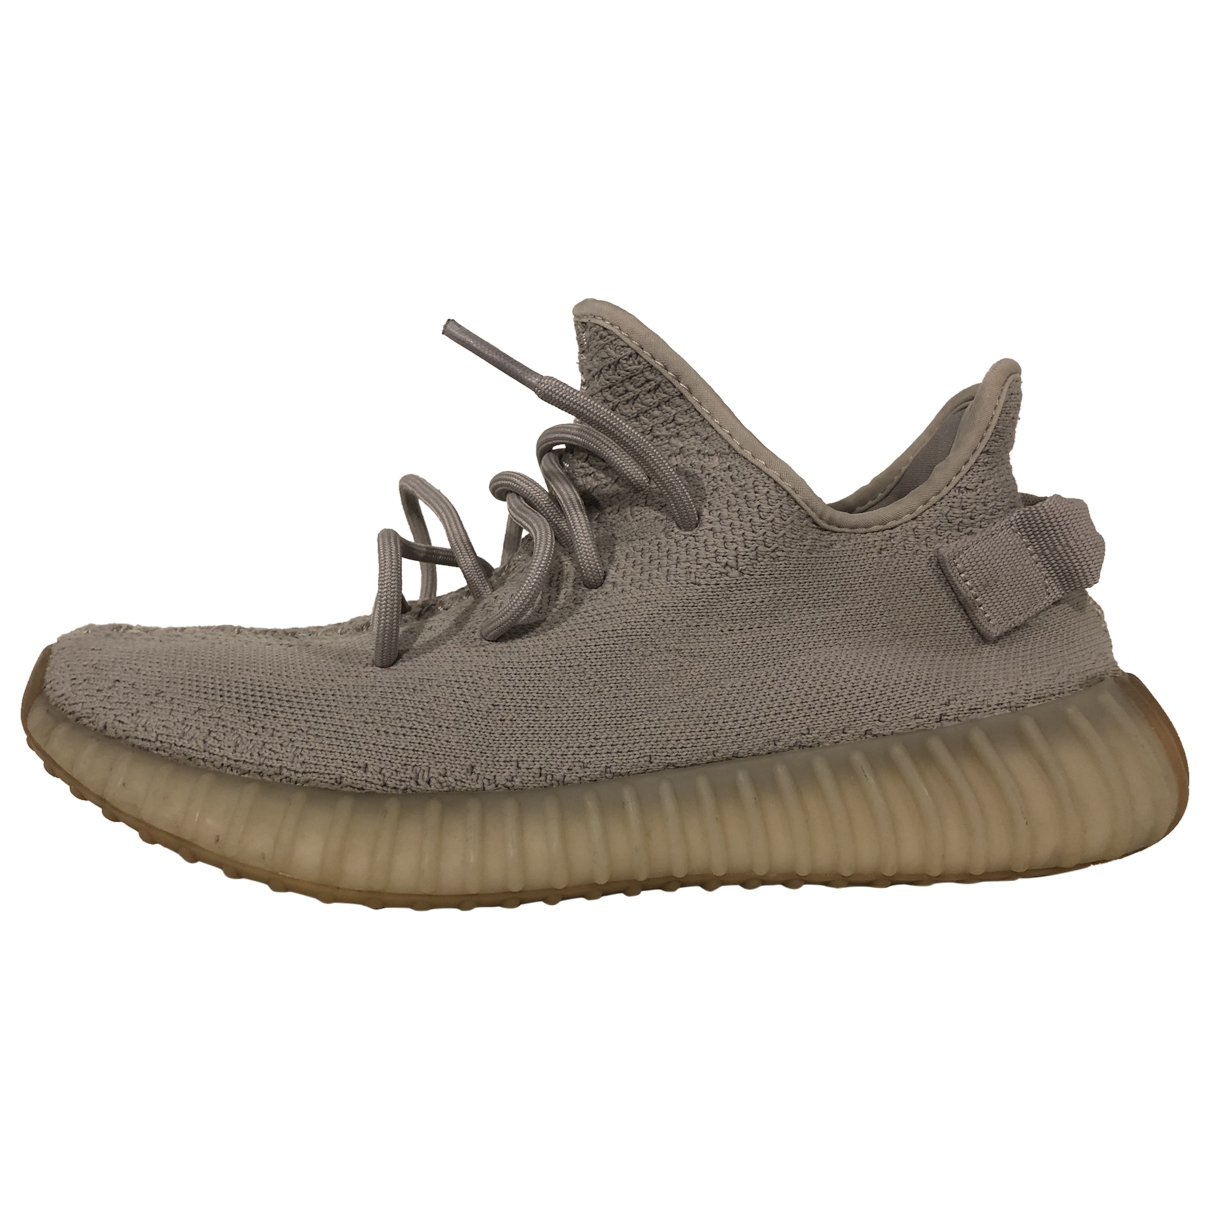 Yeezy X Adidas Boost 350 V2 Beige Trainers for Men 8.5 US